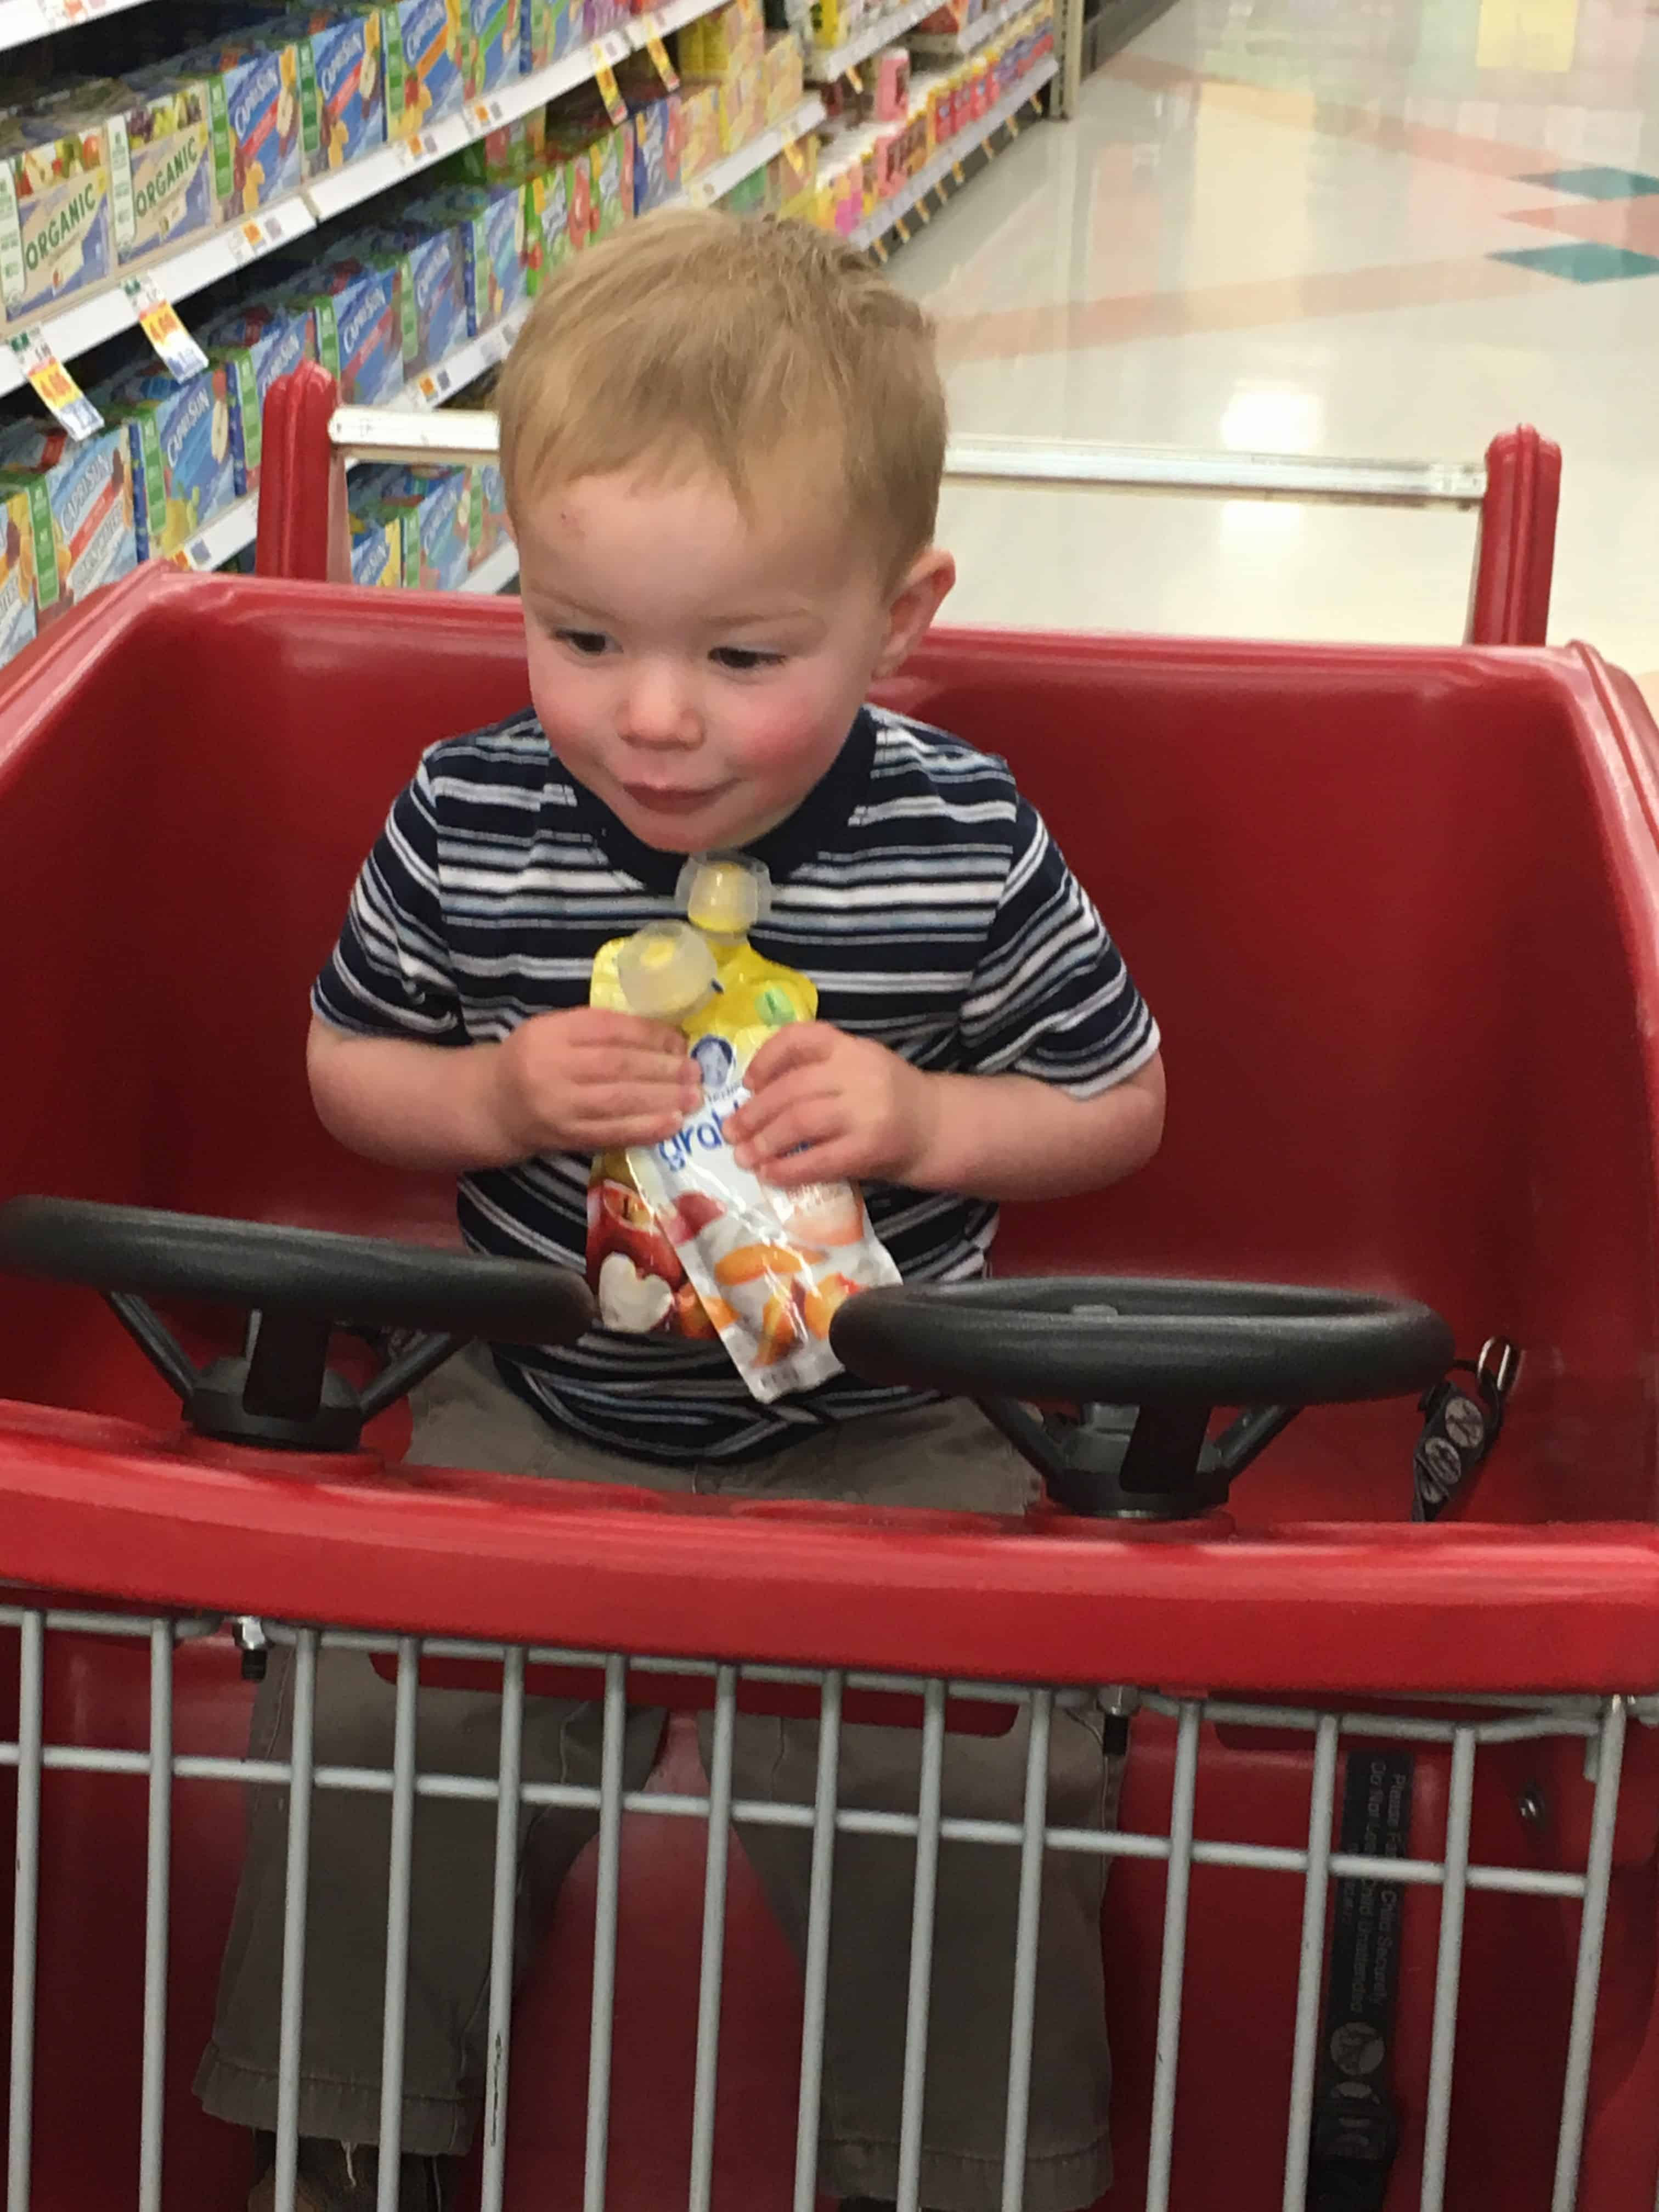 10 Perfect Places for the Gerber® Smart Flow™ Pouch